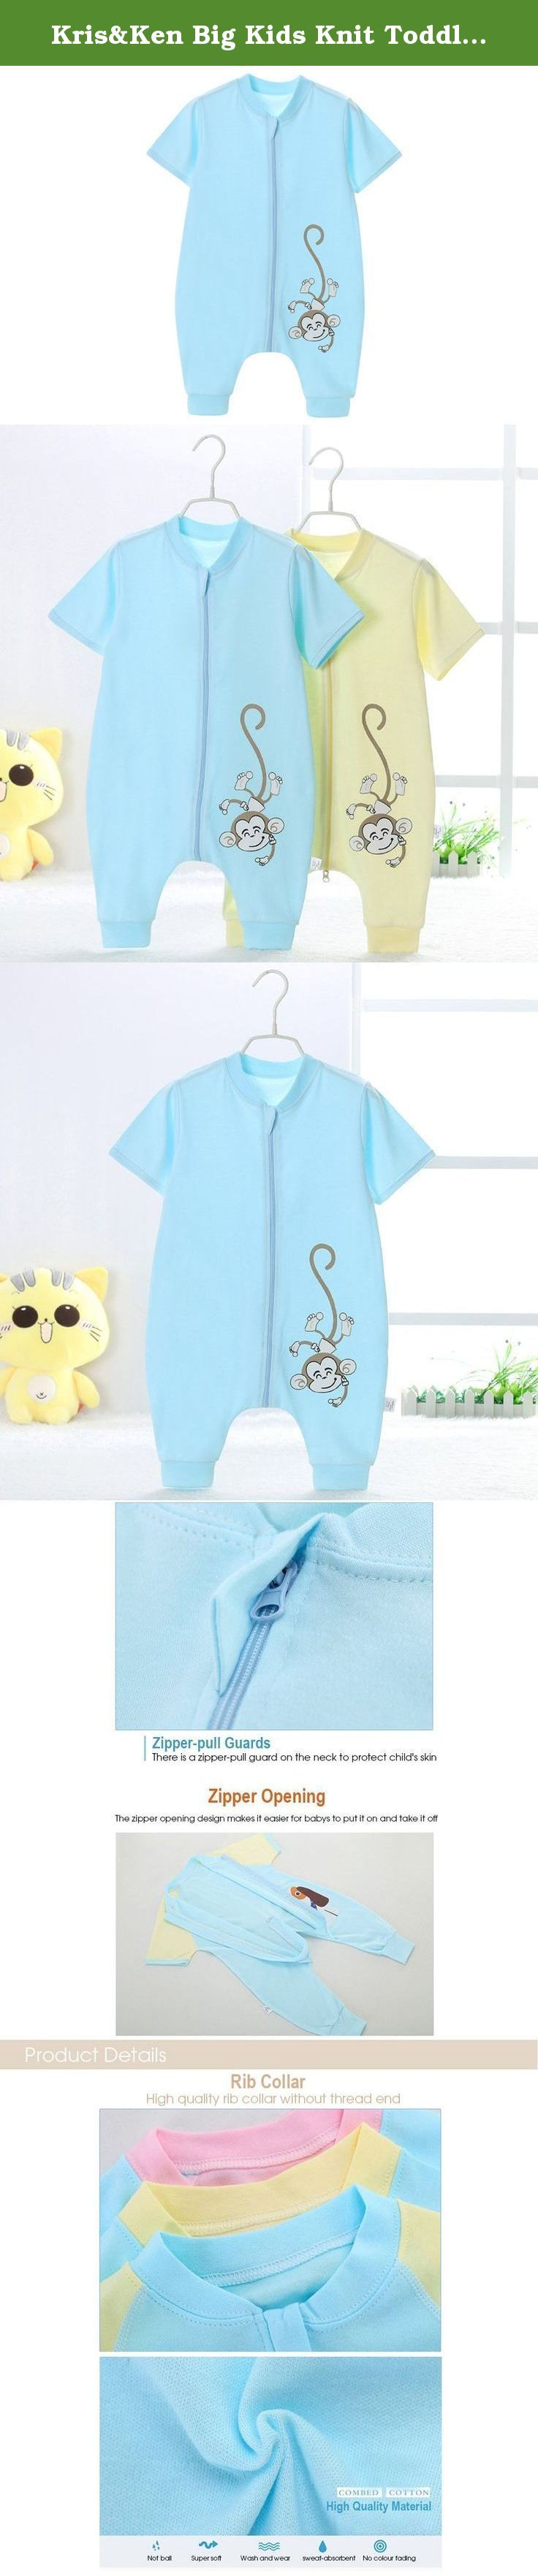 Kris&Ken Big Kids Knit Toddler Pajamas Unisex Baby's Sleepwear Blanket Sleeper 2-4T. Kris&Ken Big Kids Knit Toddler Pajamas Unisex Baby's Sleepwear Blanket Sleeper 2-4T Materials : - Filled with high quality cotton which is breathable and has good elasticity and heat insulating ability. - No pilling and deformation. Also the surface is soft and smooth which is comfortable to wear. Suitable for Spring,Summer and Fall : -The material isn't thick and it's very breathable so suitable for…